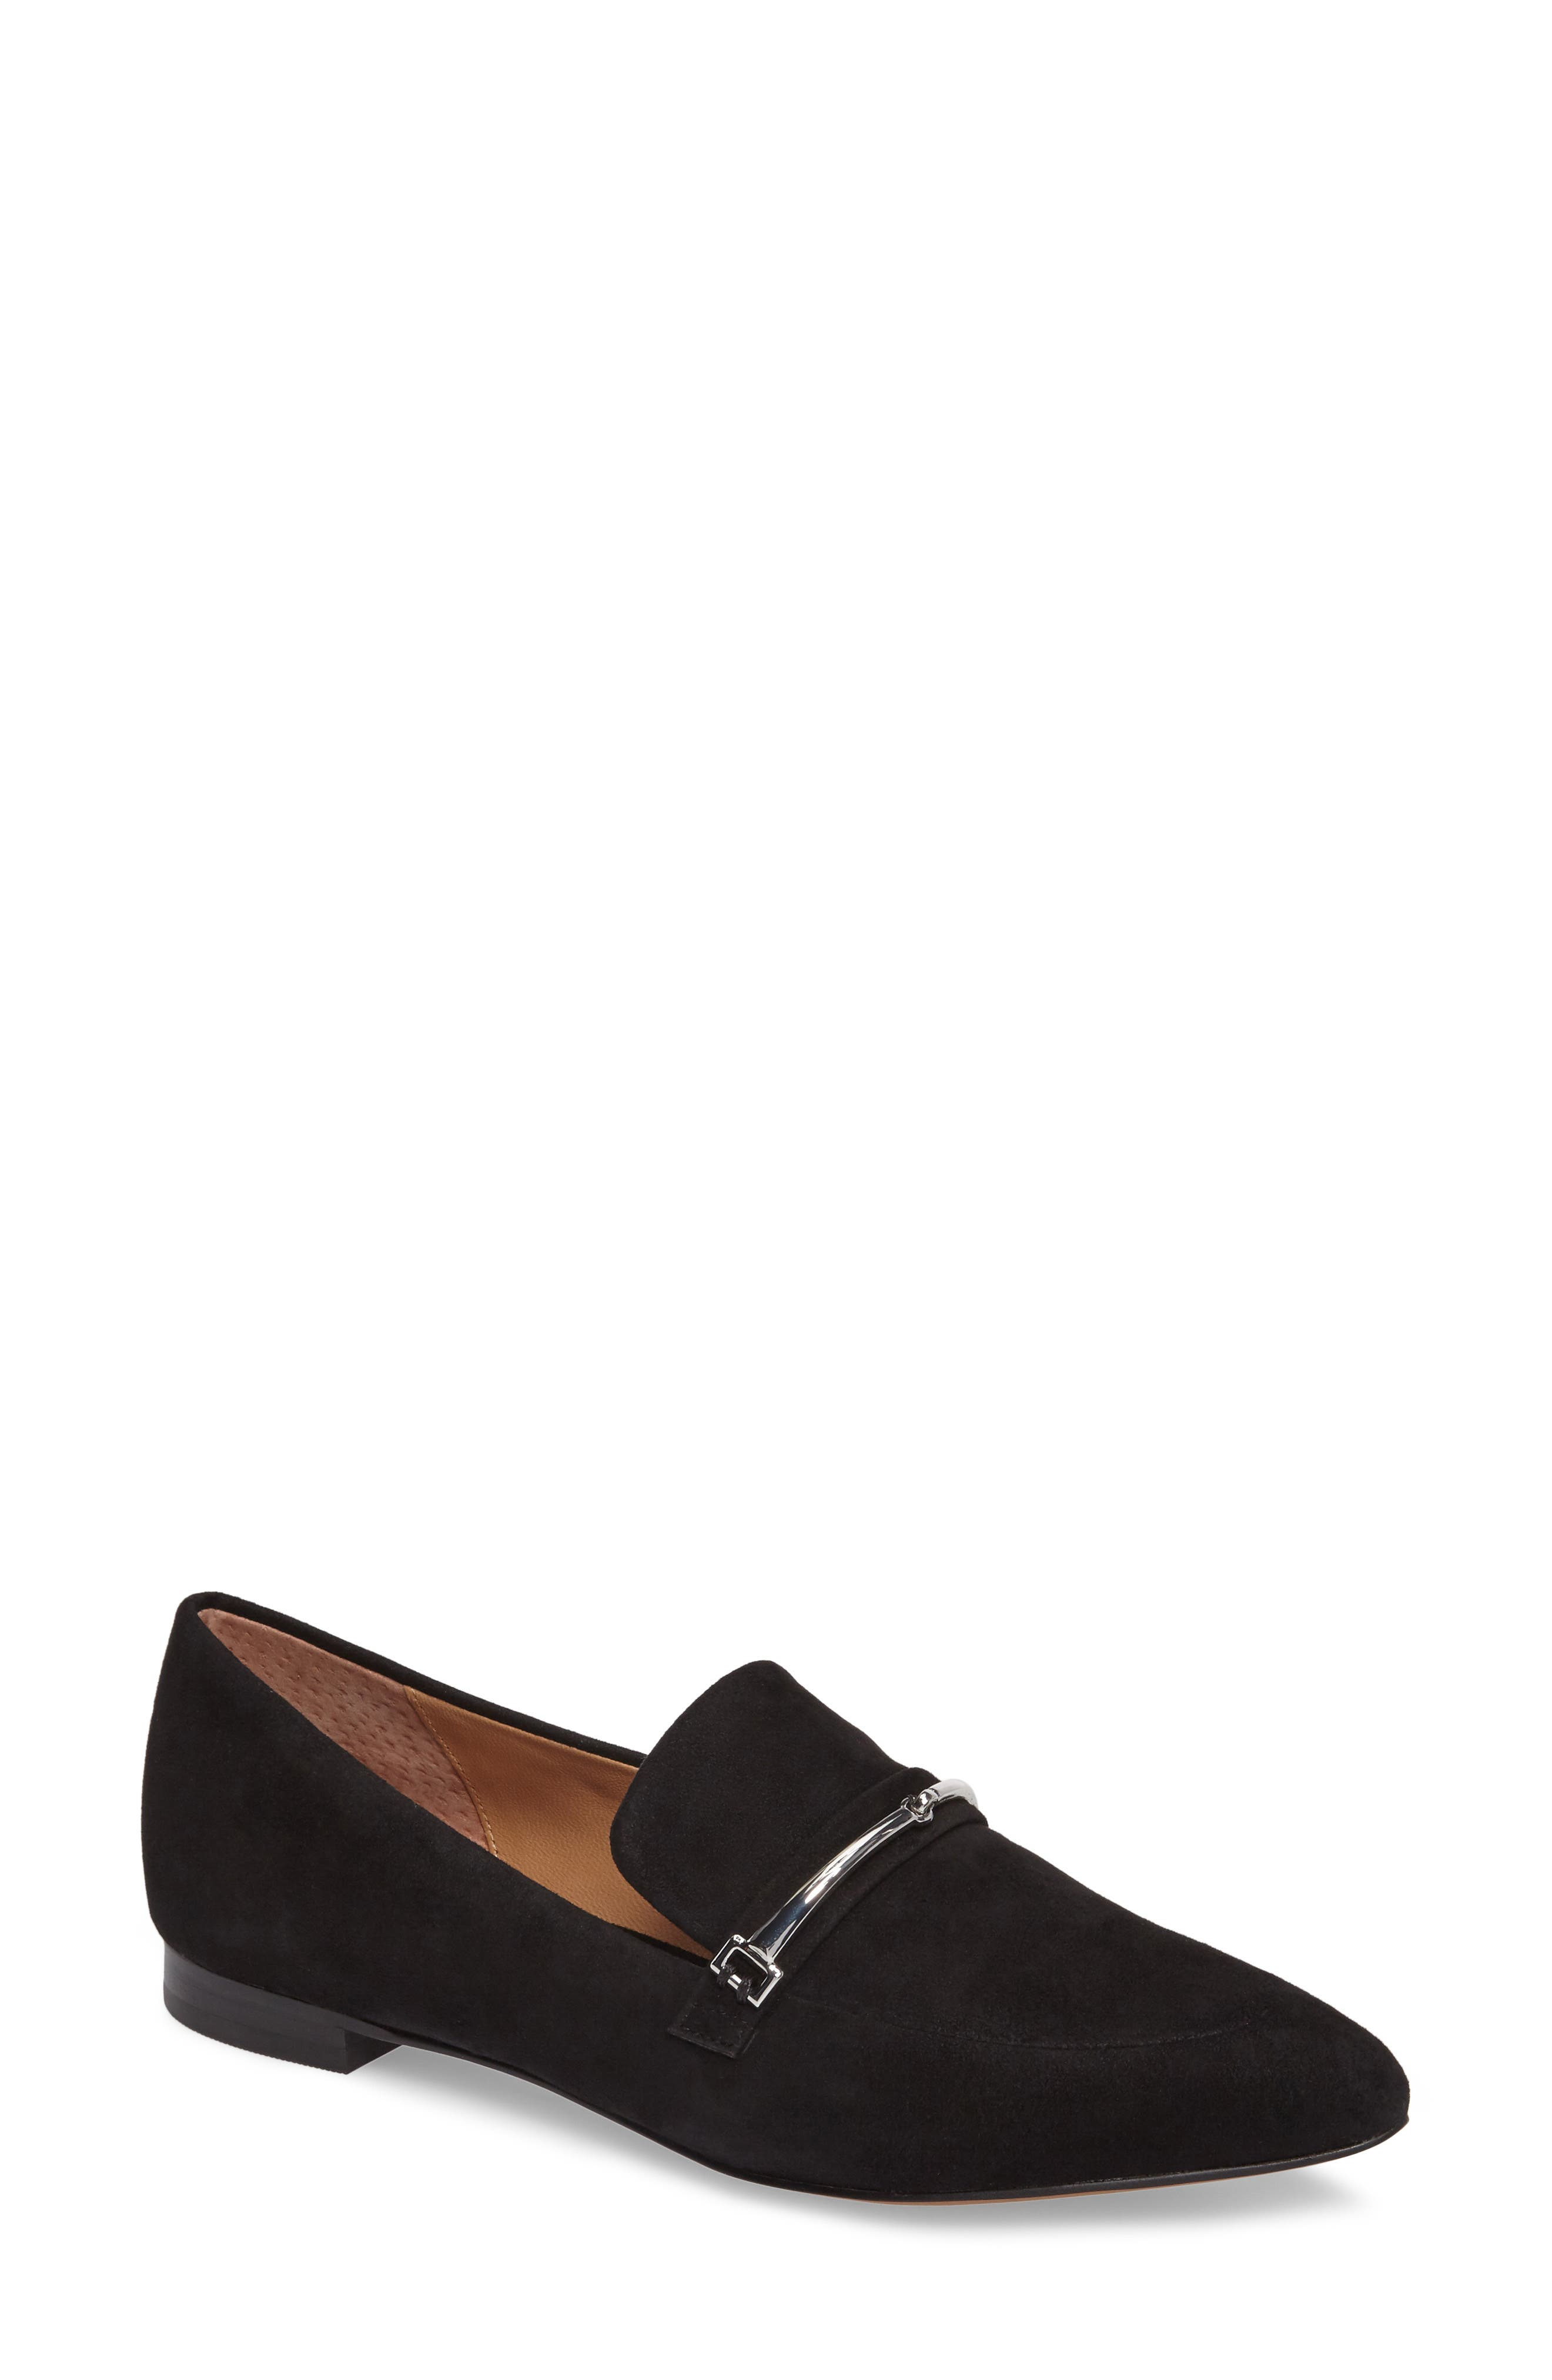 Molly Loafer,                             Main thumbnail 1, color,                             Black Suede